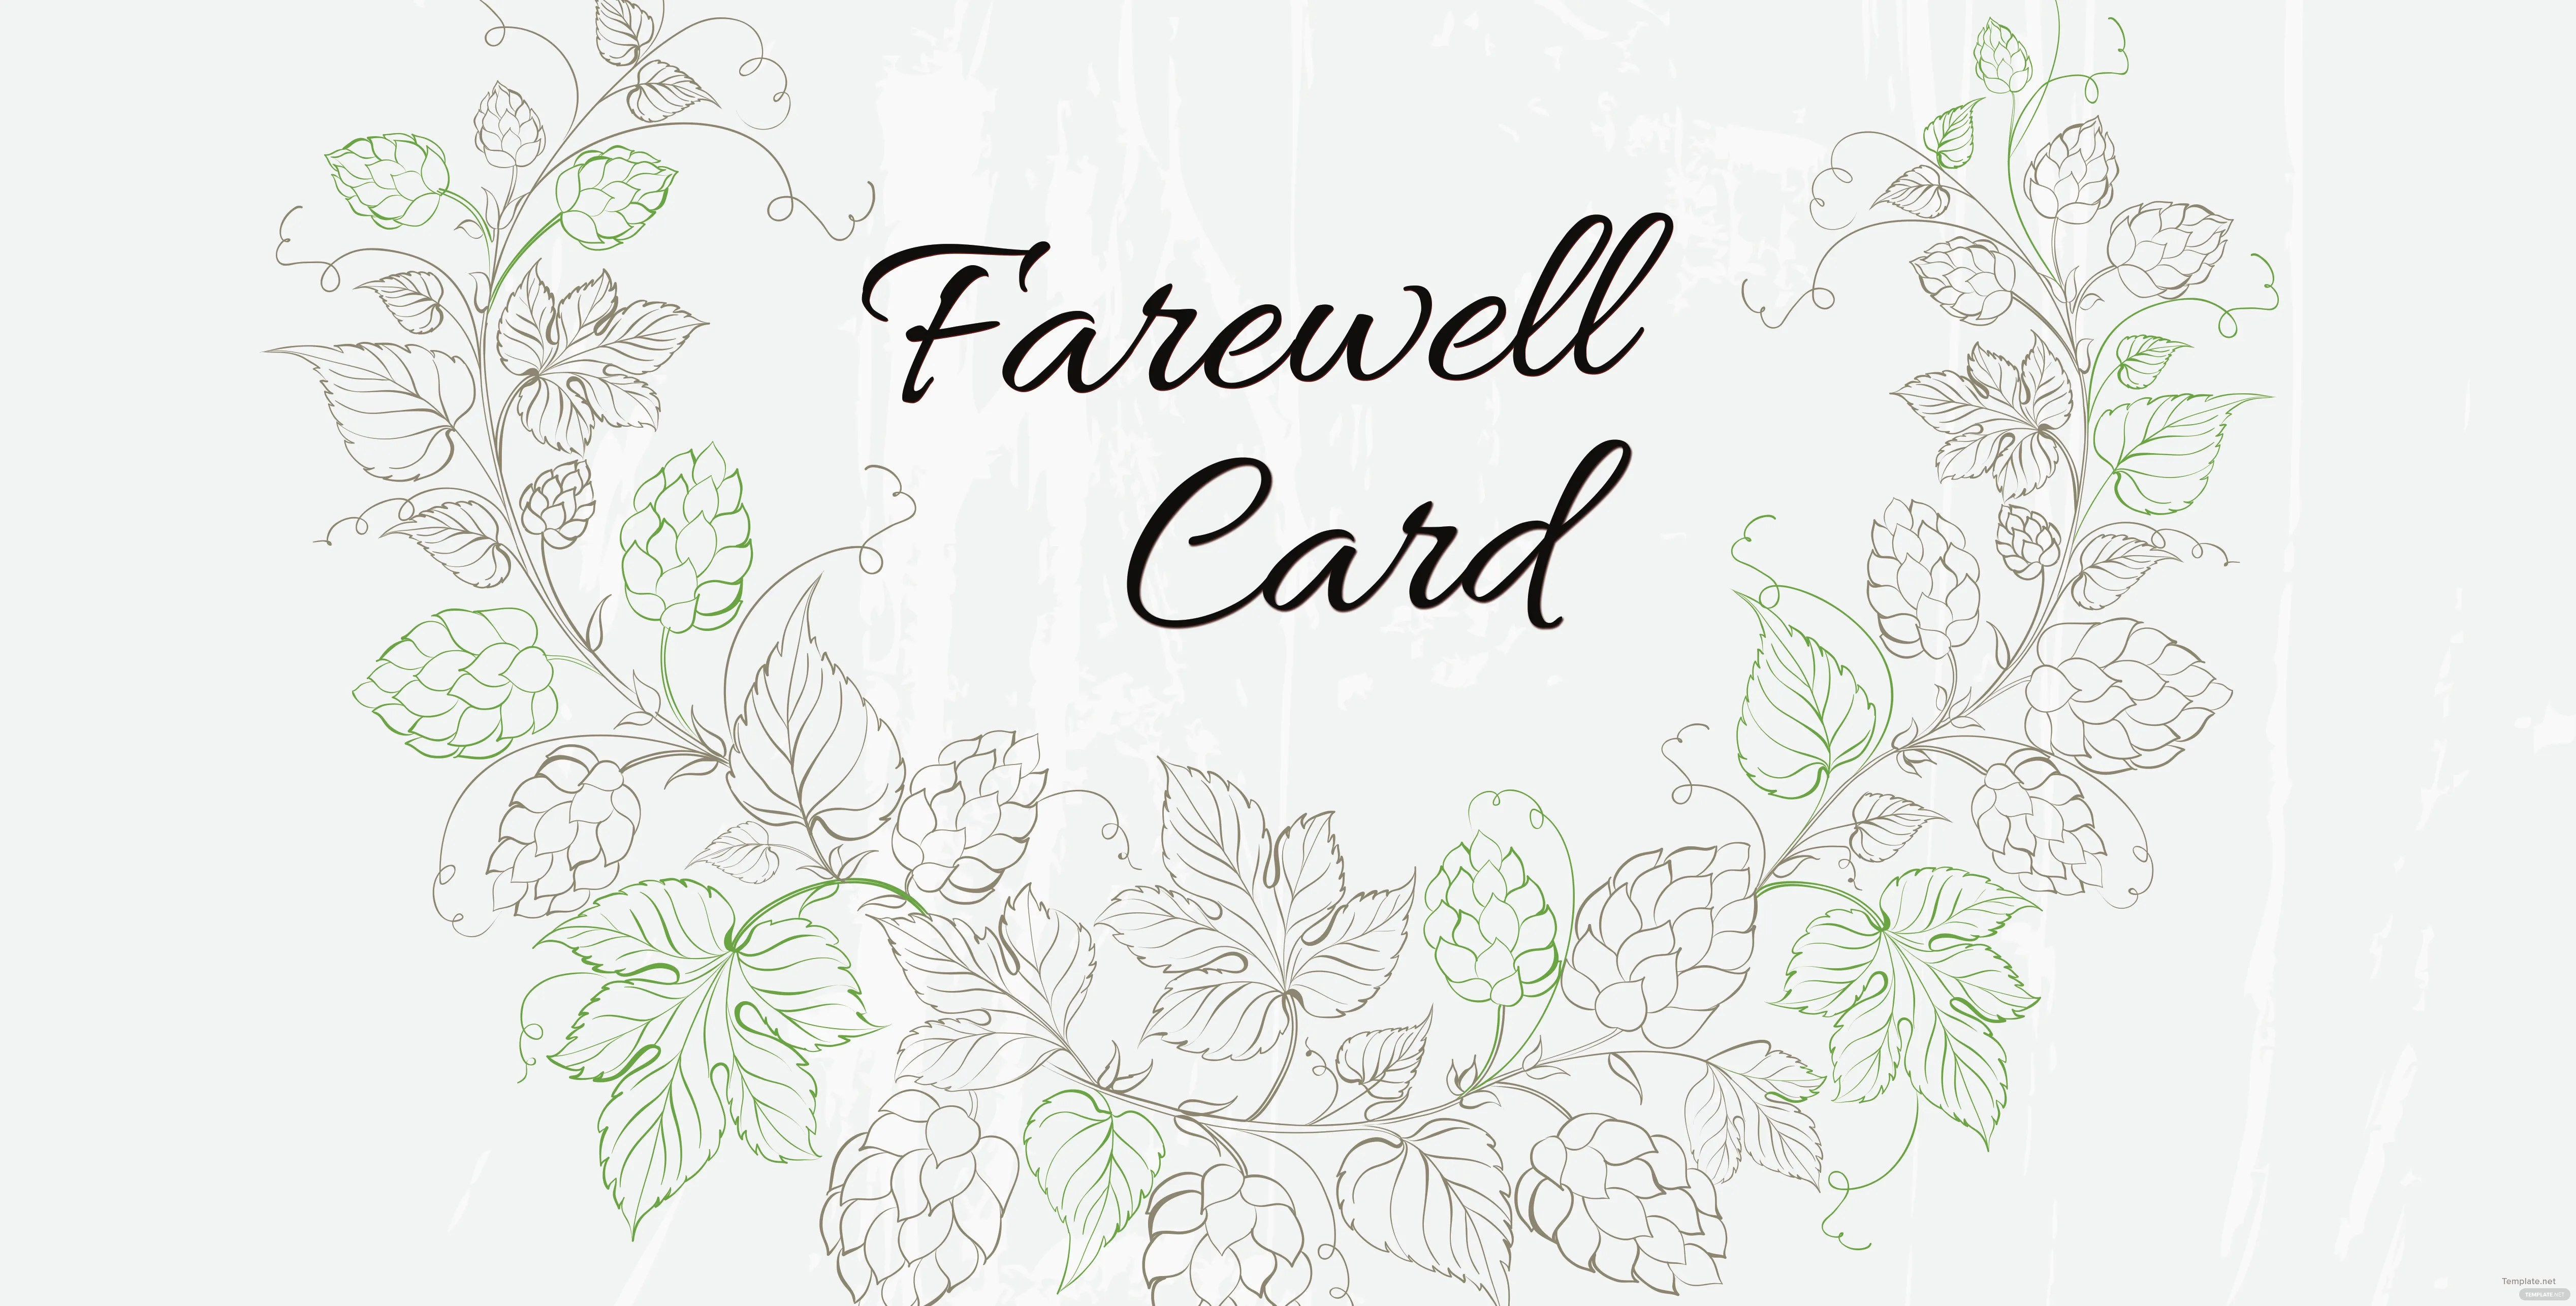 Free Farewell Invitation Card Template in Adobe Photoshop